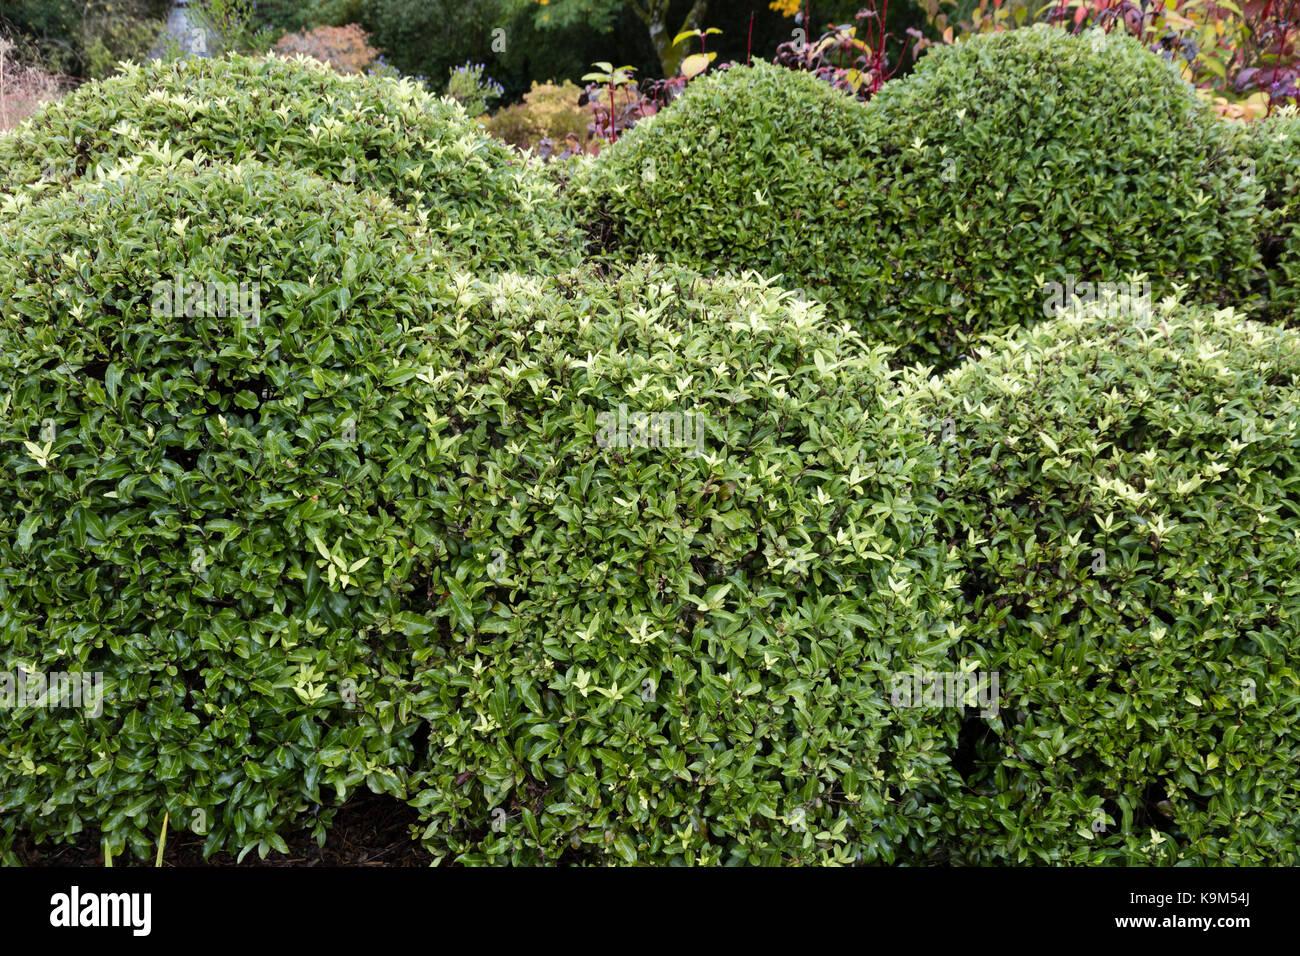 Pittosporum Plant Stock Photos Pittosporum Plant Stock Images